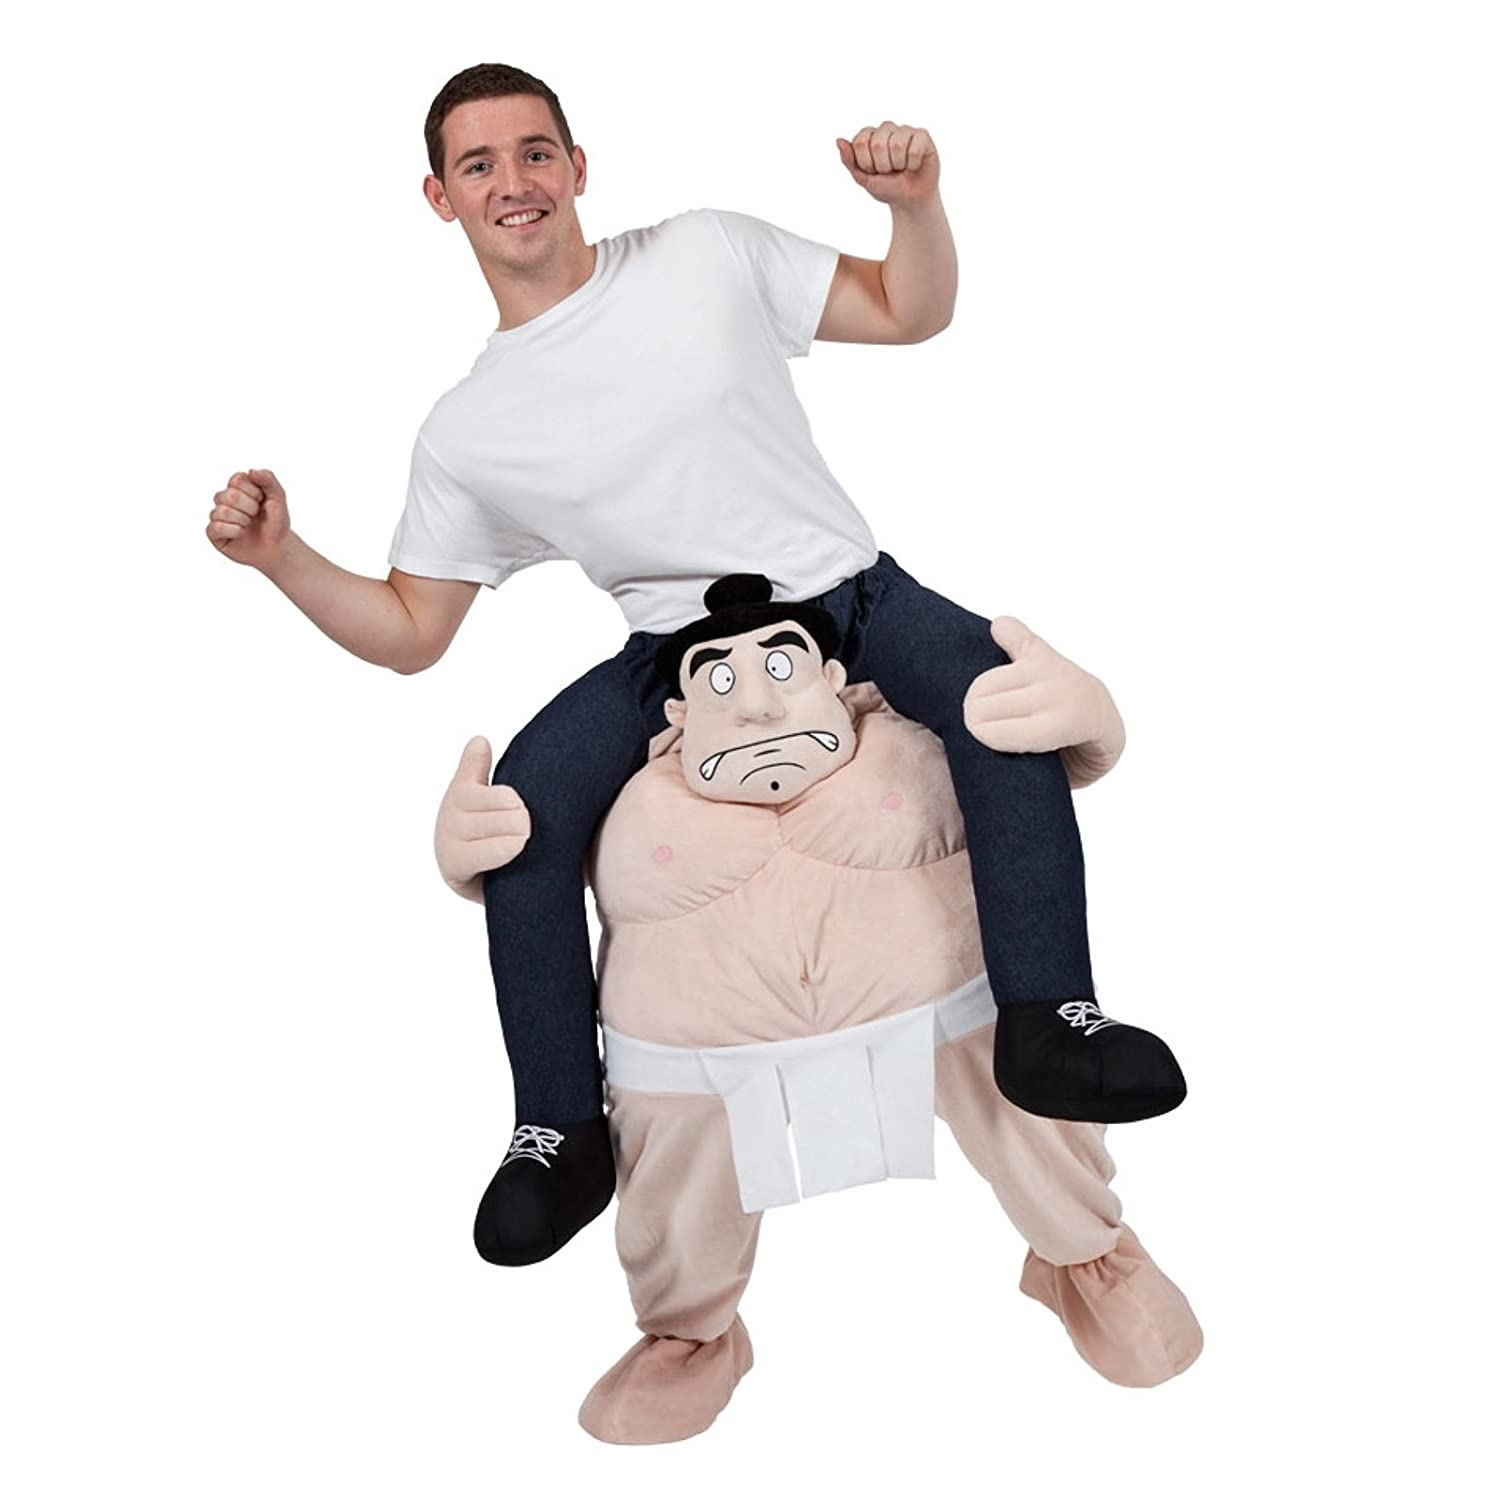 CRAZY SUMO WRESTLER CARRY ME MASCOT FANCY DRESS COSTUME